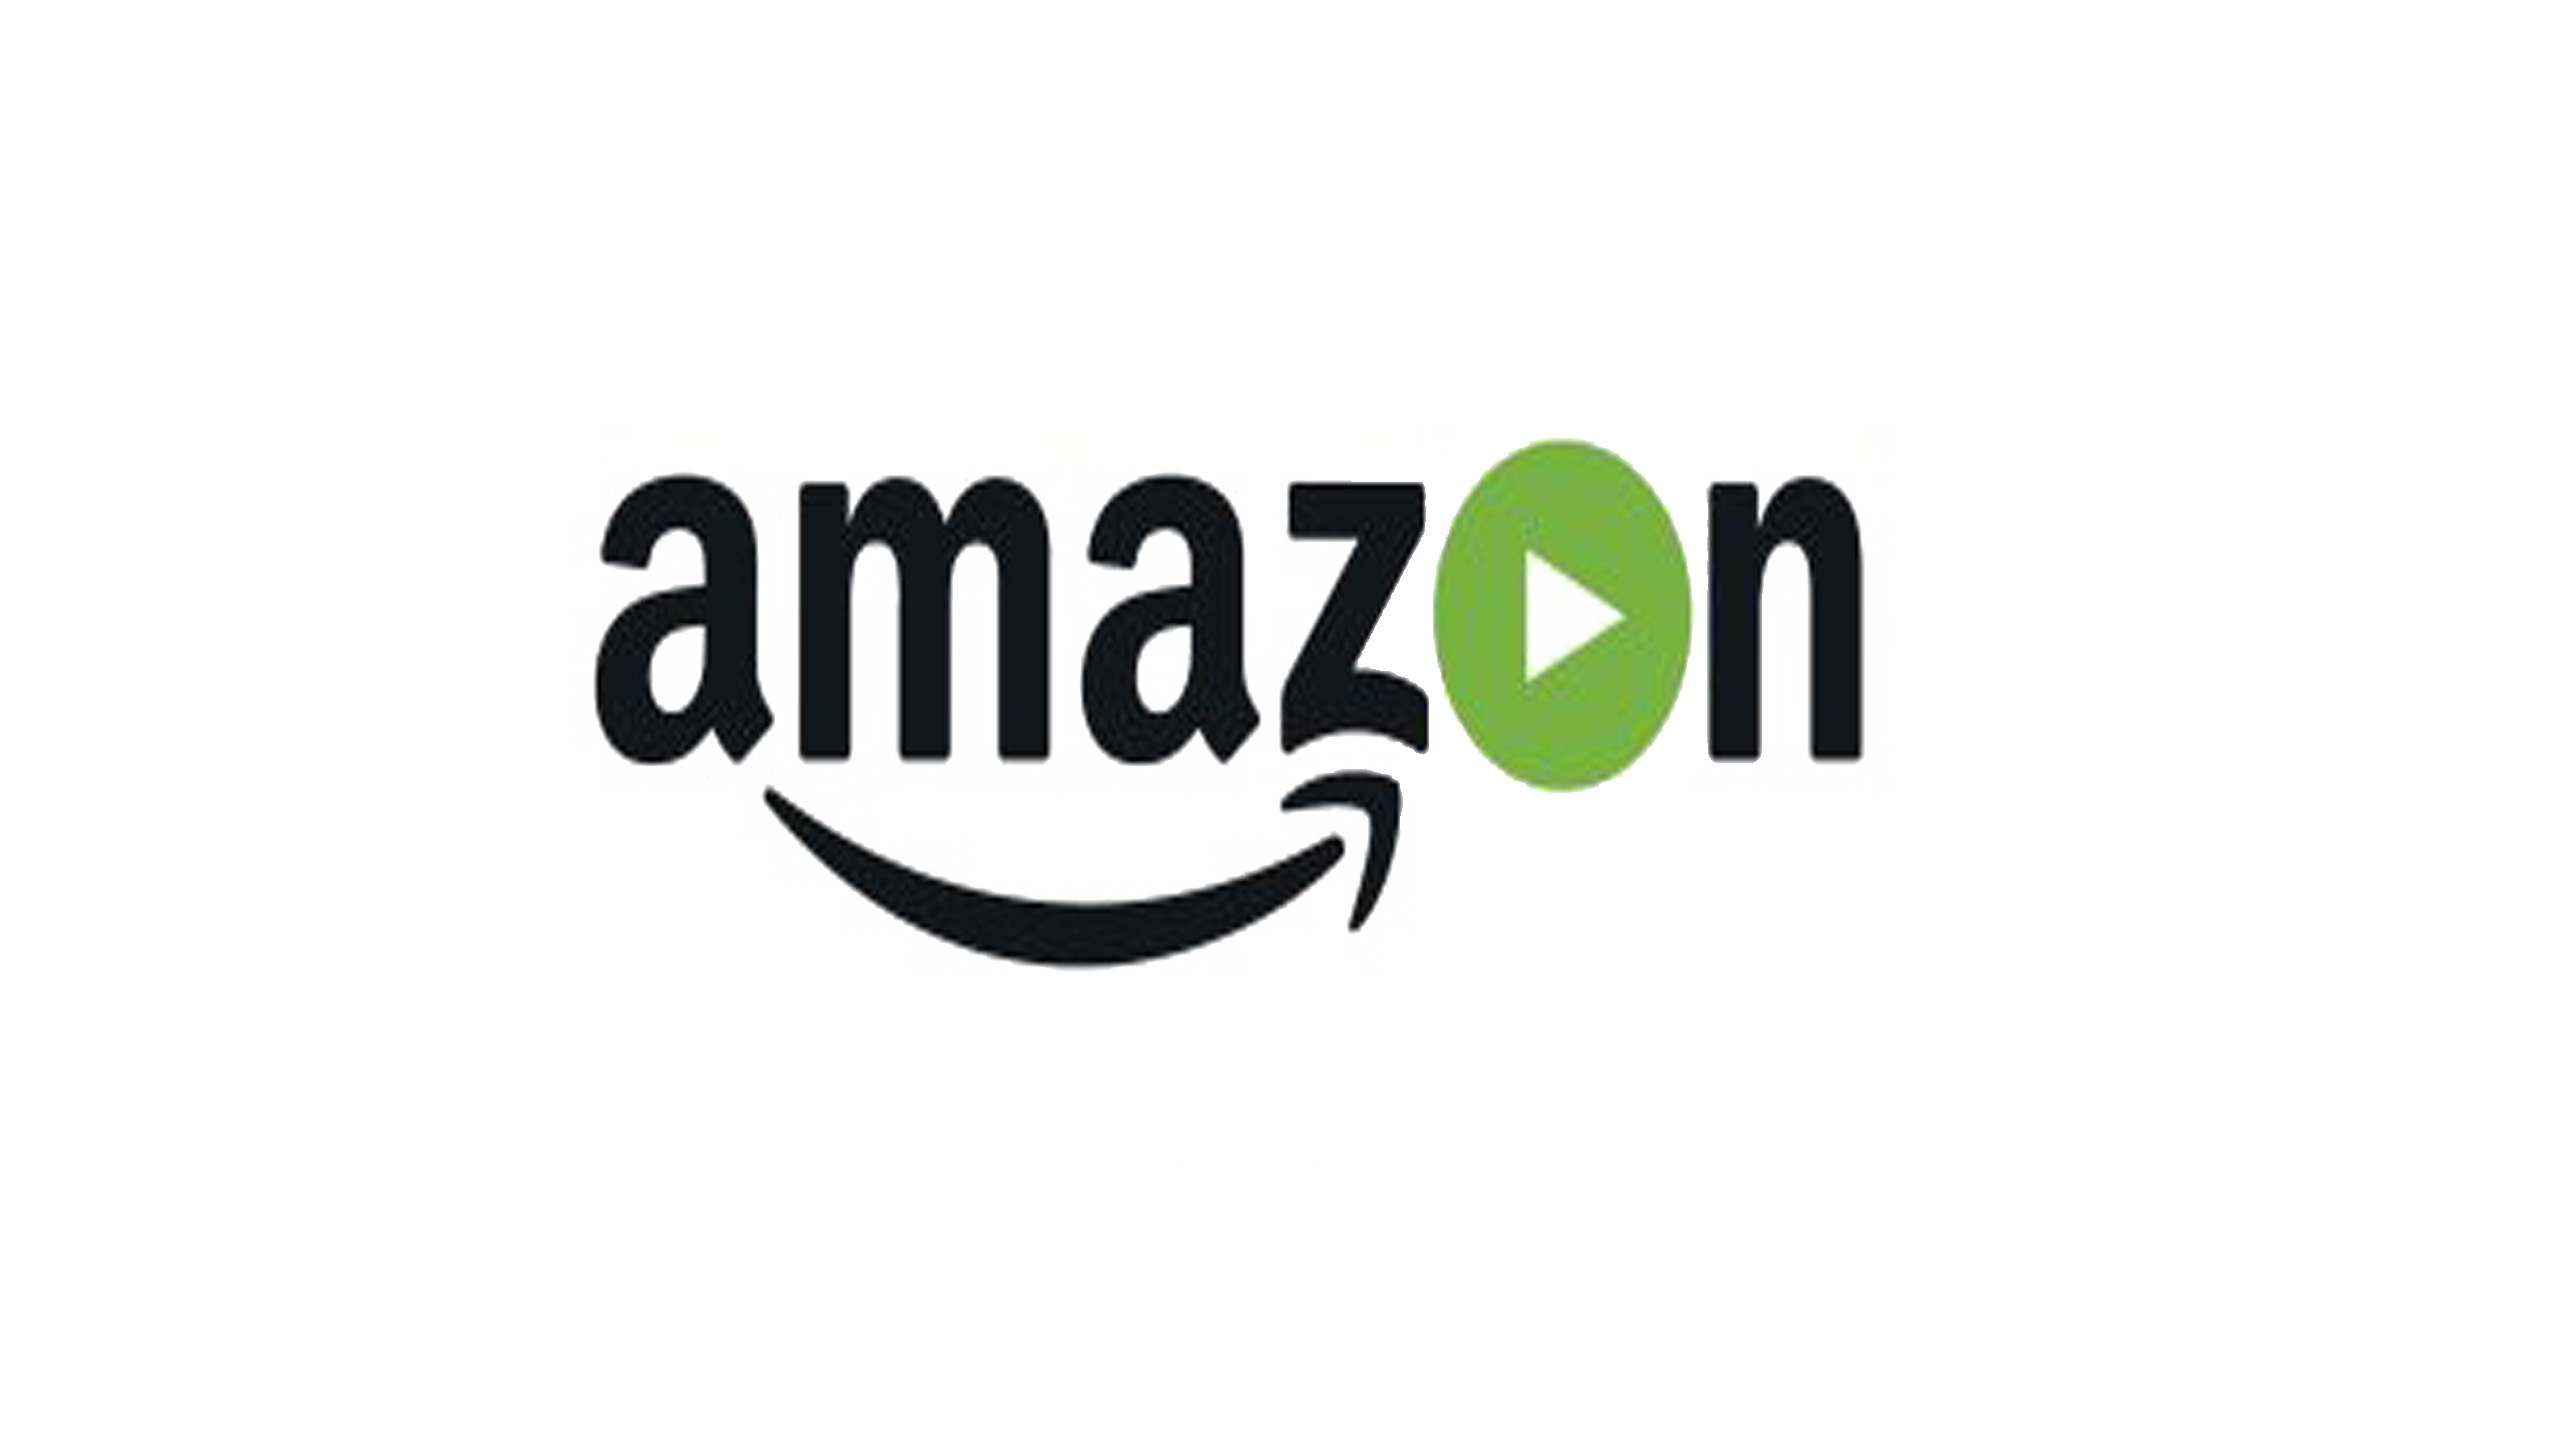 Amazon Logo PNG Transparent Image.